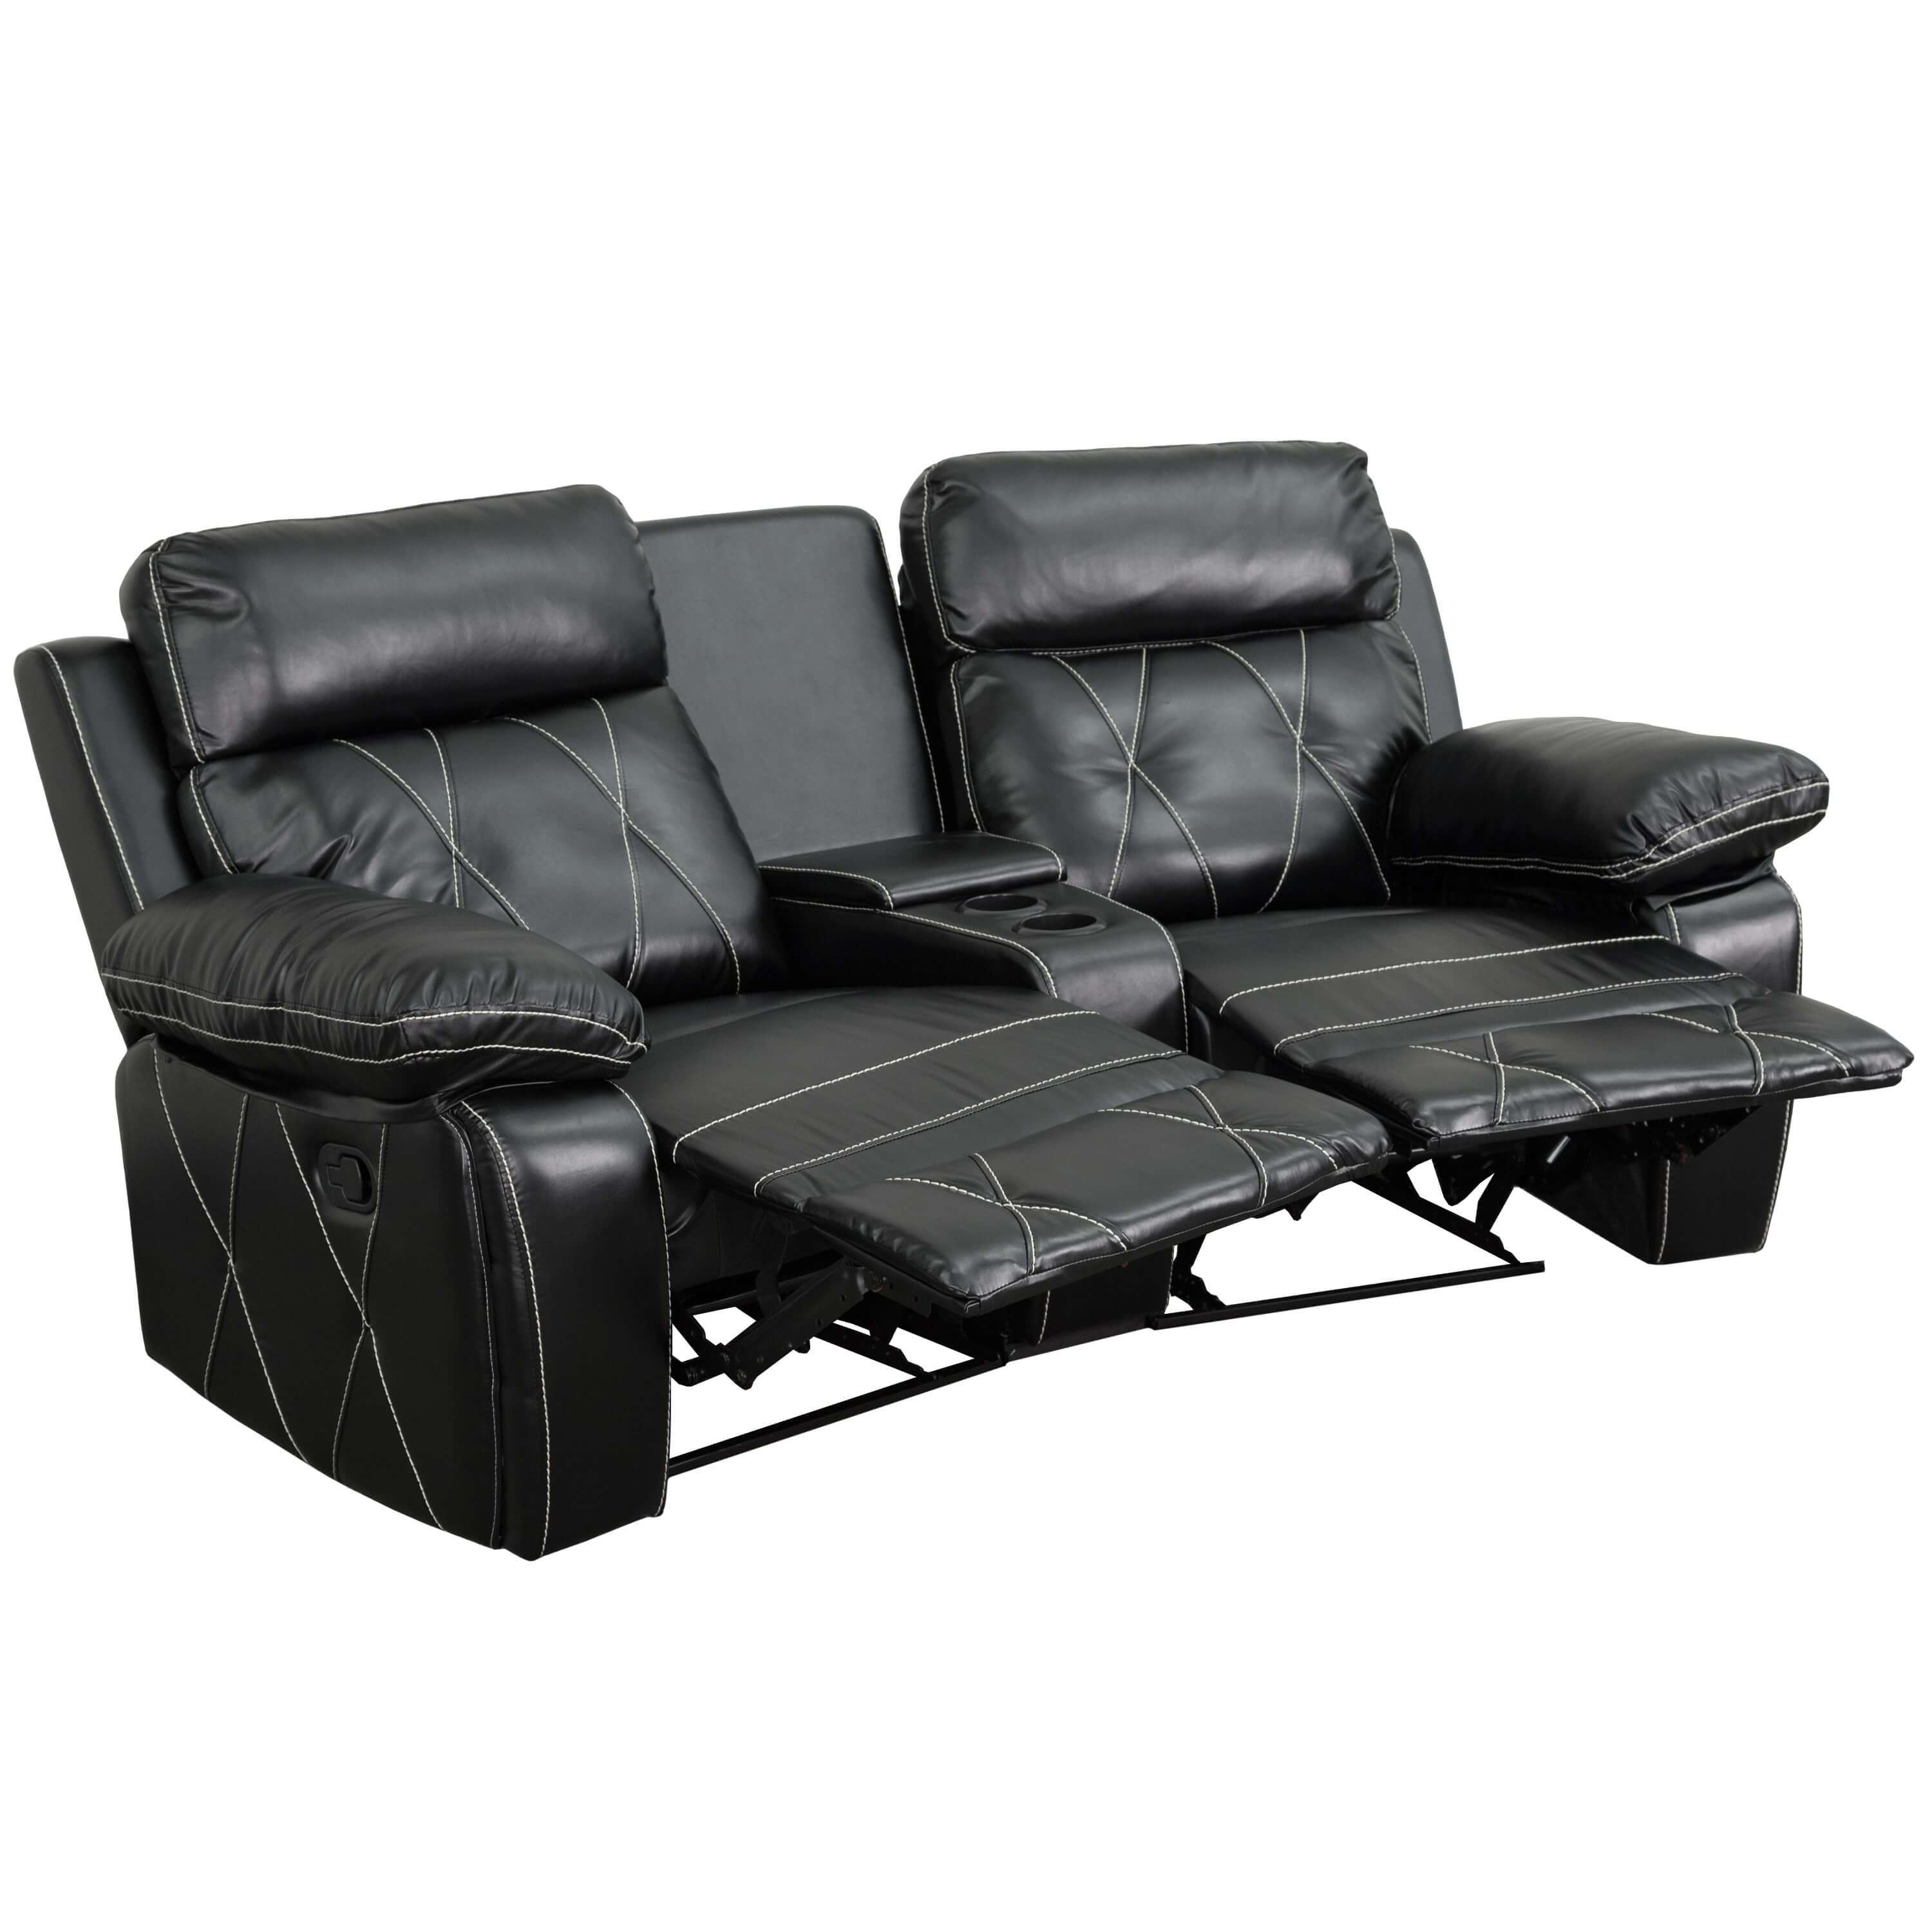 Home theater recliners CUB BT 70530 2 BK CV GG FLA